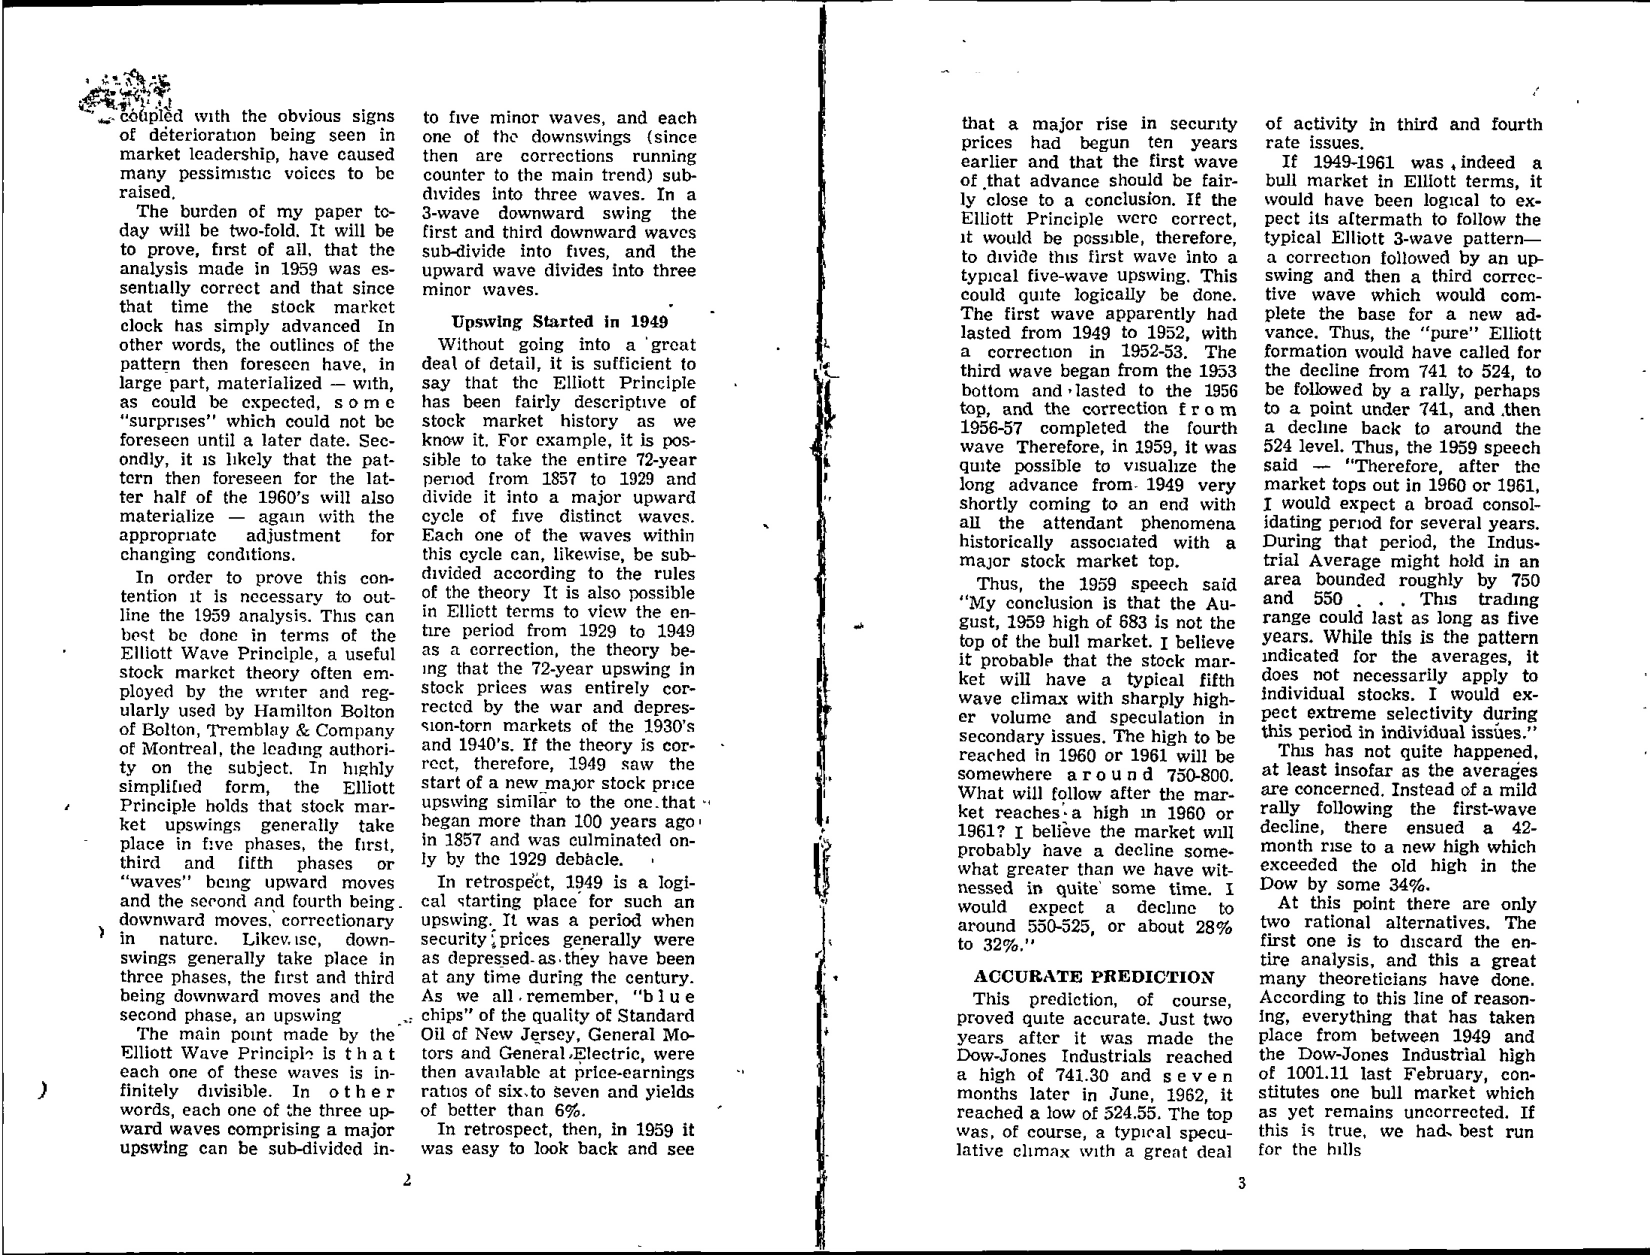 Tabell's Market Letter - May 20, 1966 page 2